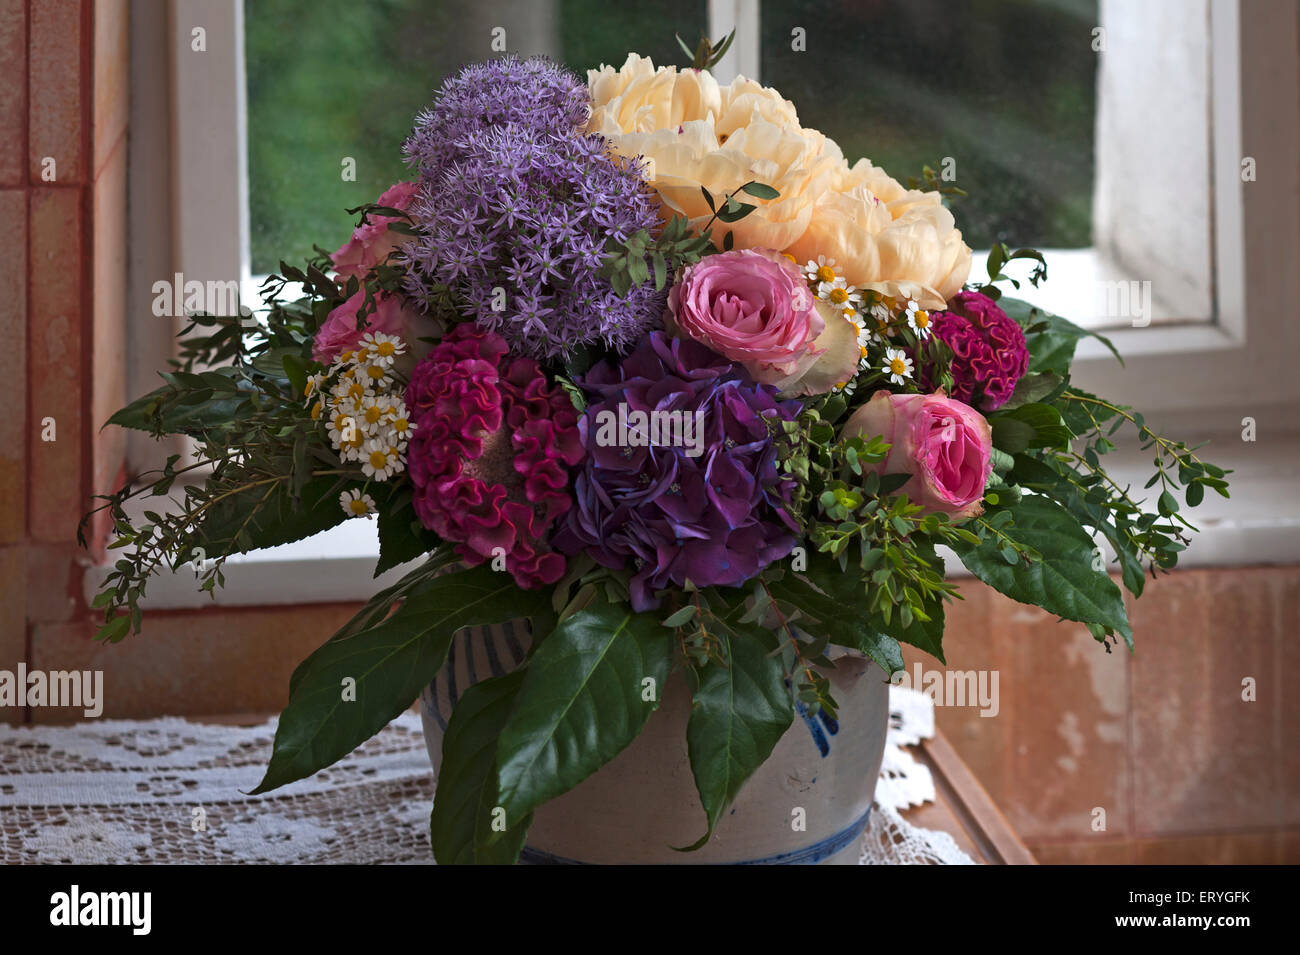 Colourful spring bouquet in front of window - Stock Image